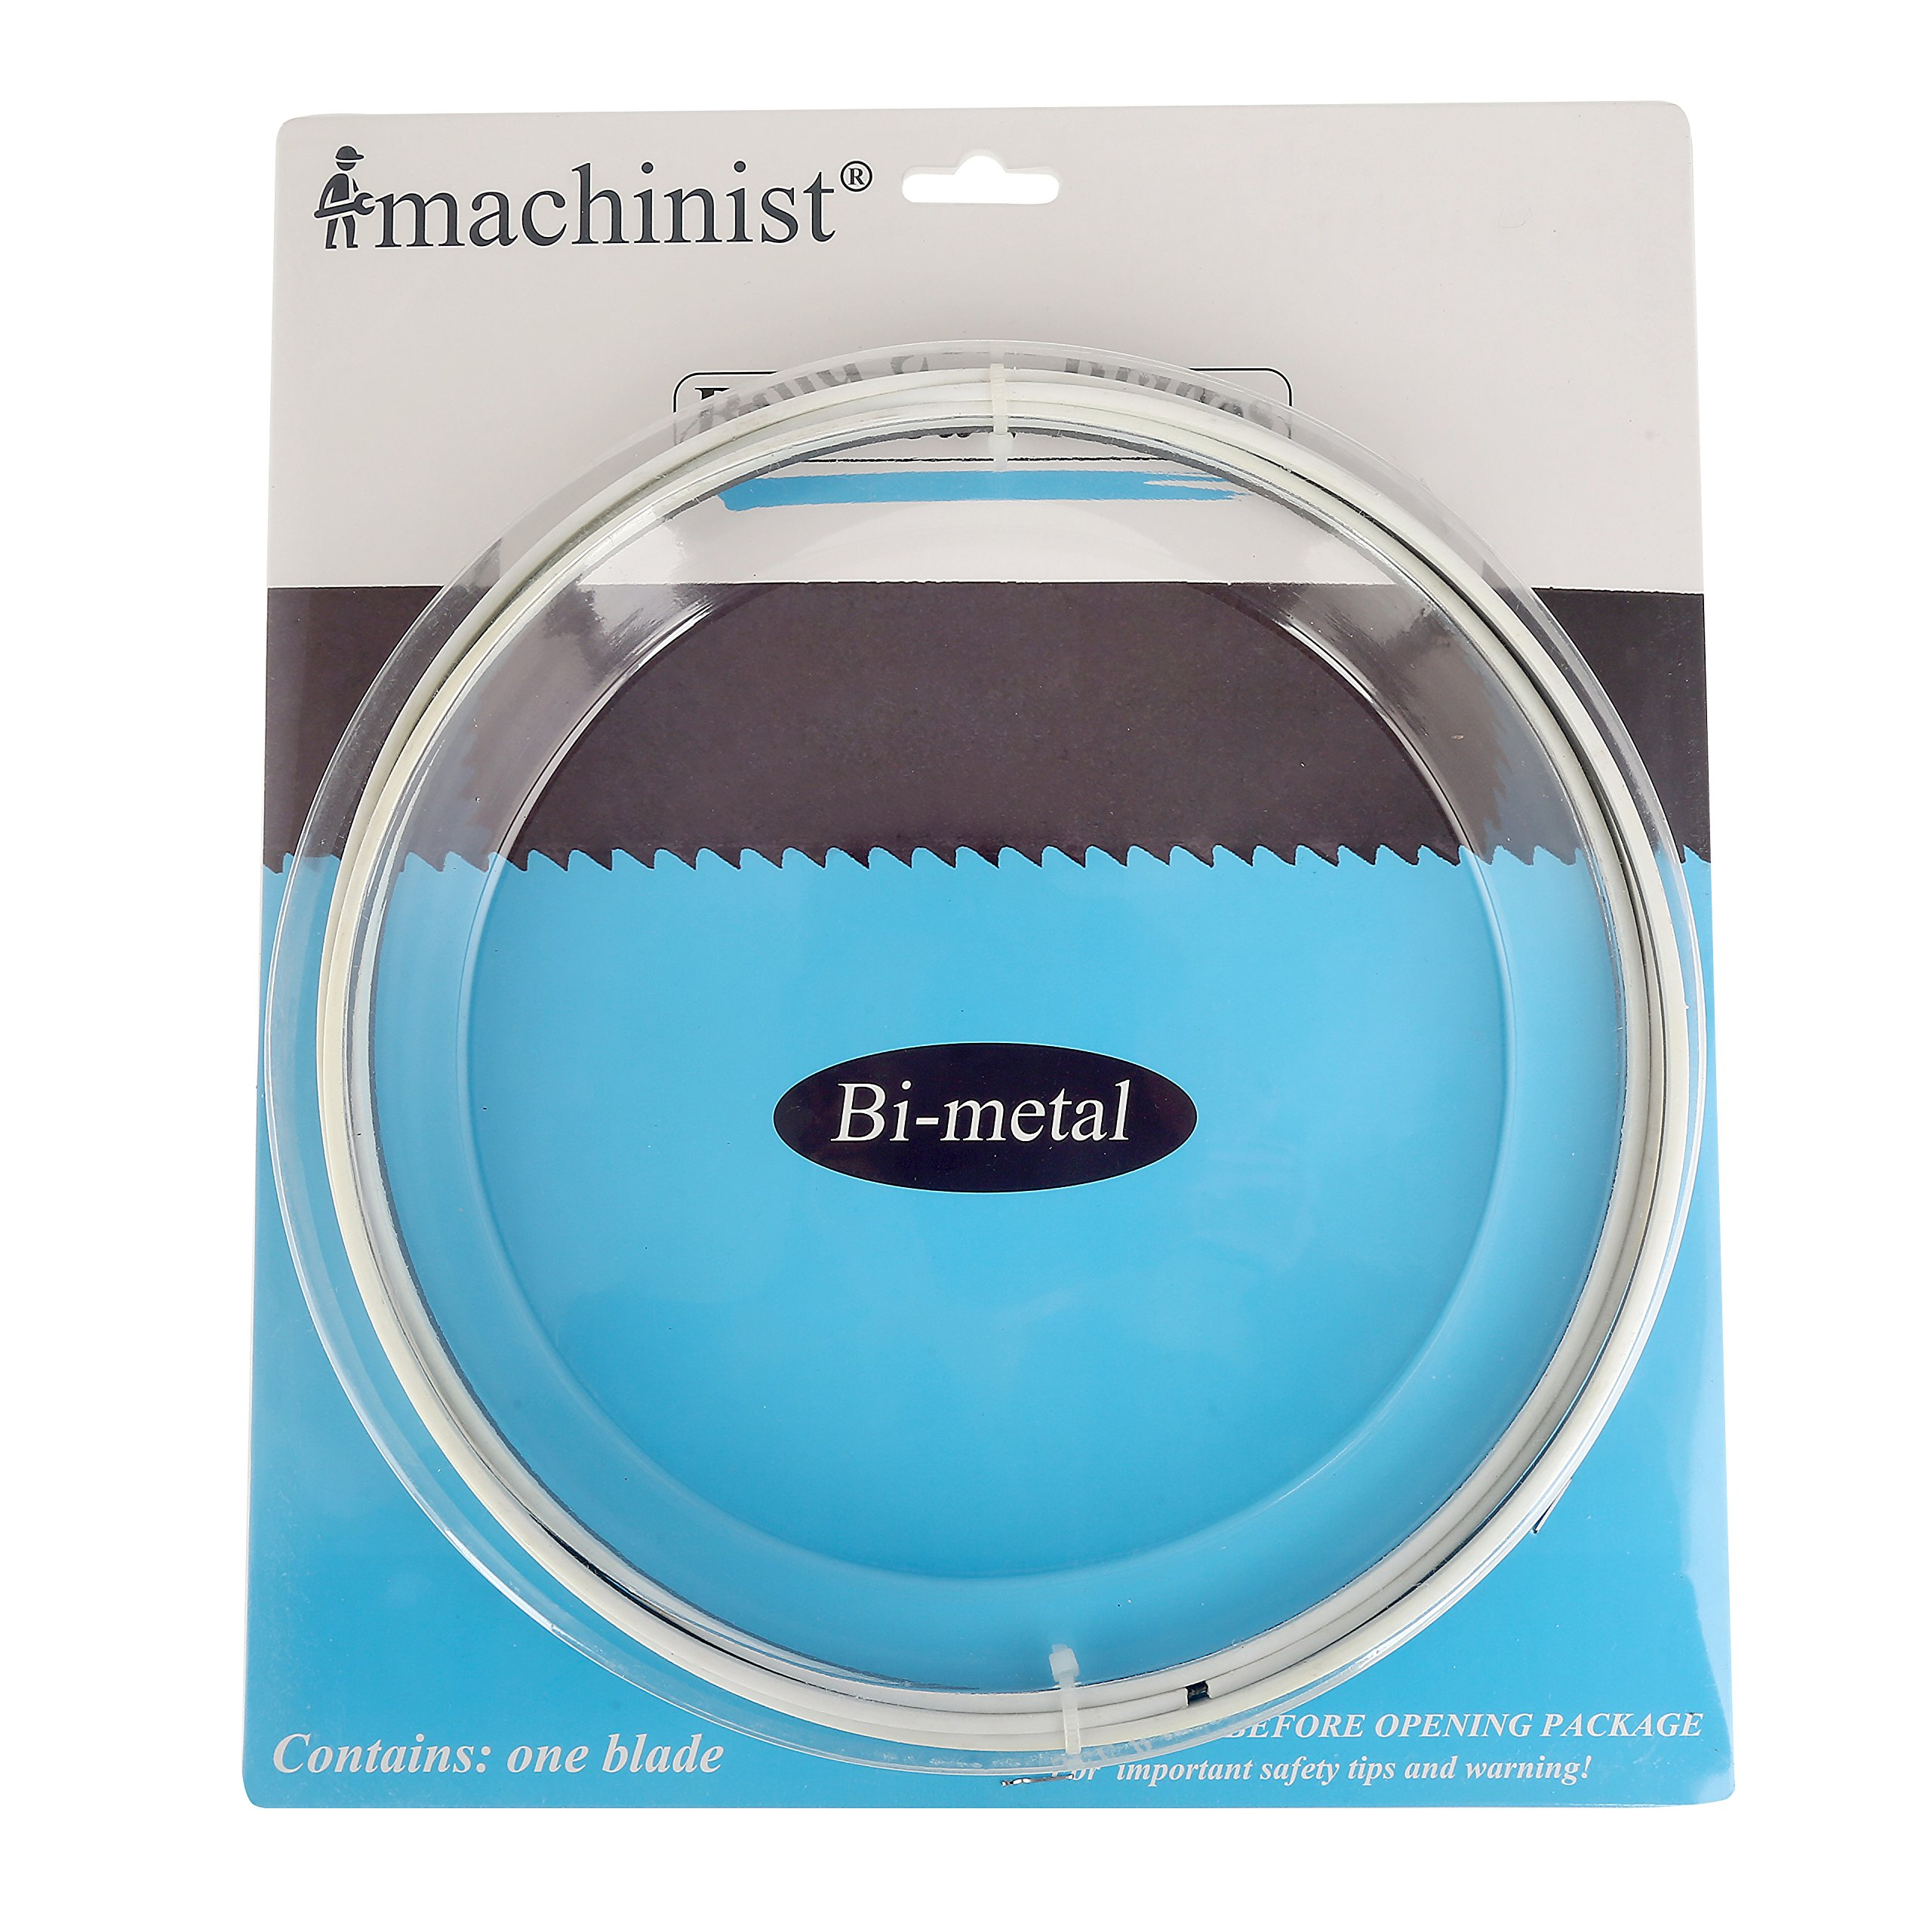 Imachinist S801314 Bi-metal Band Saw Blades 80-inch By 1/2-inch By 14tpi